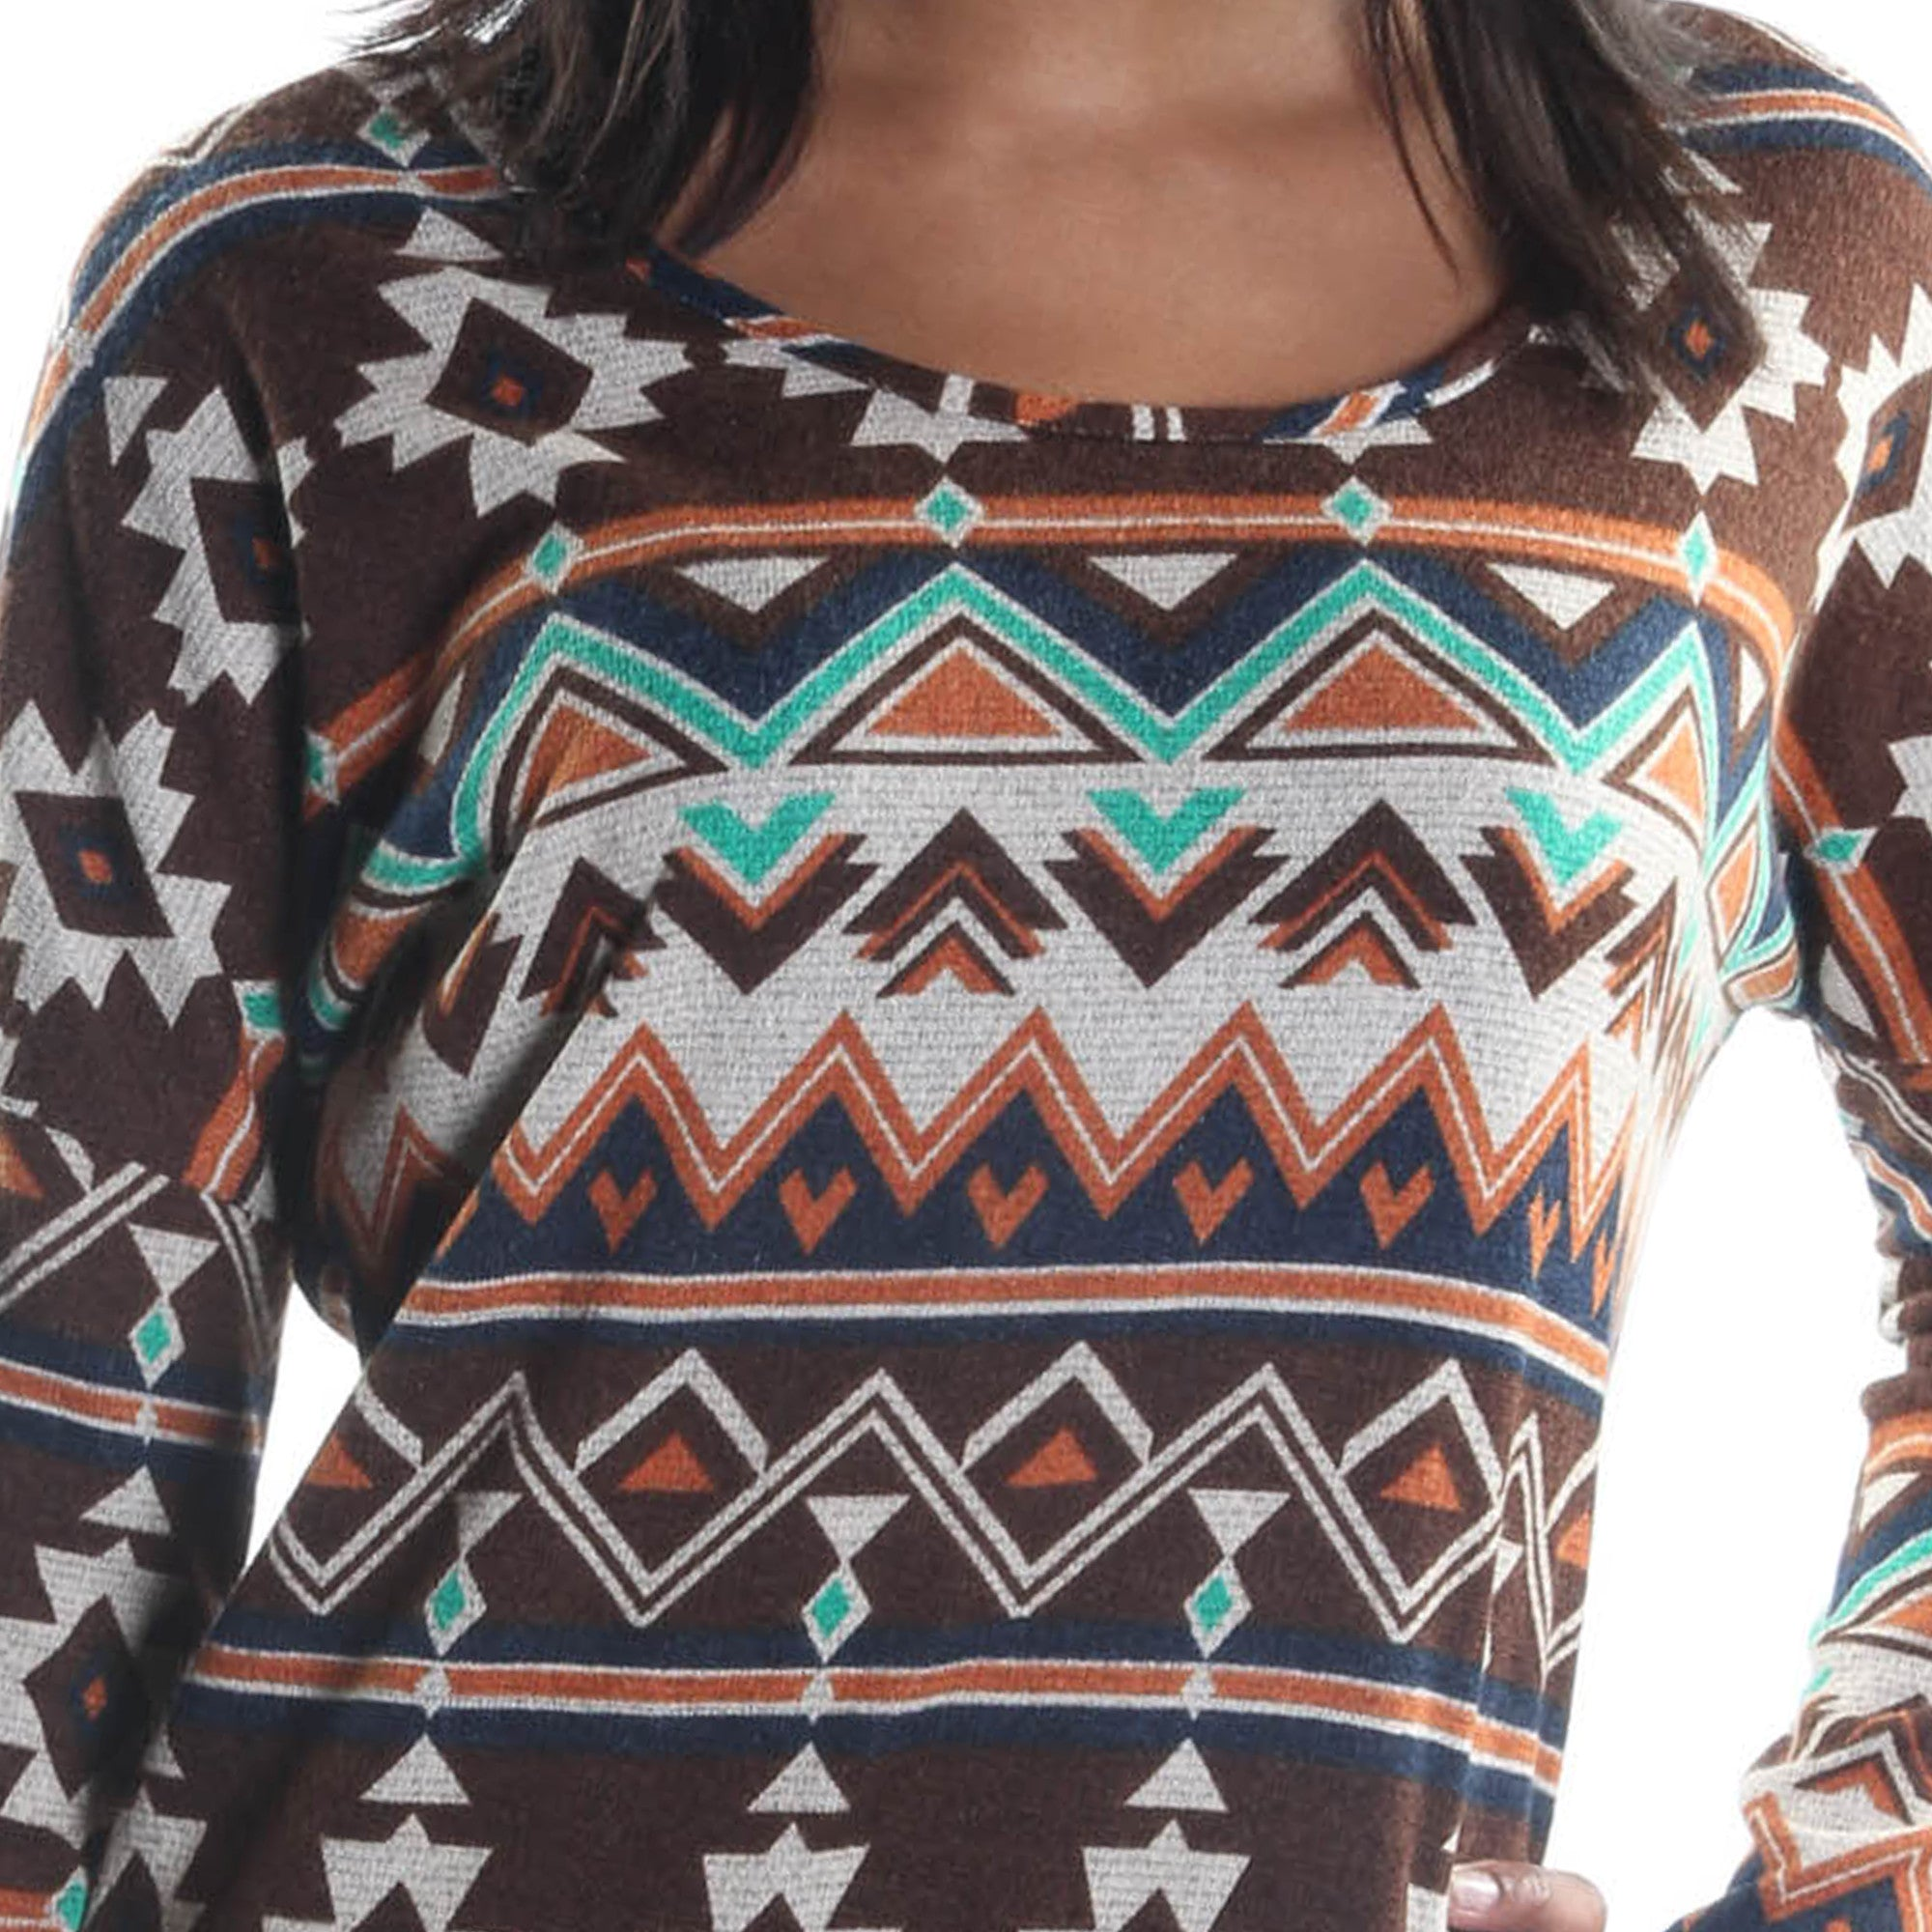 Chevron Print Tunic Top